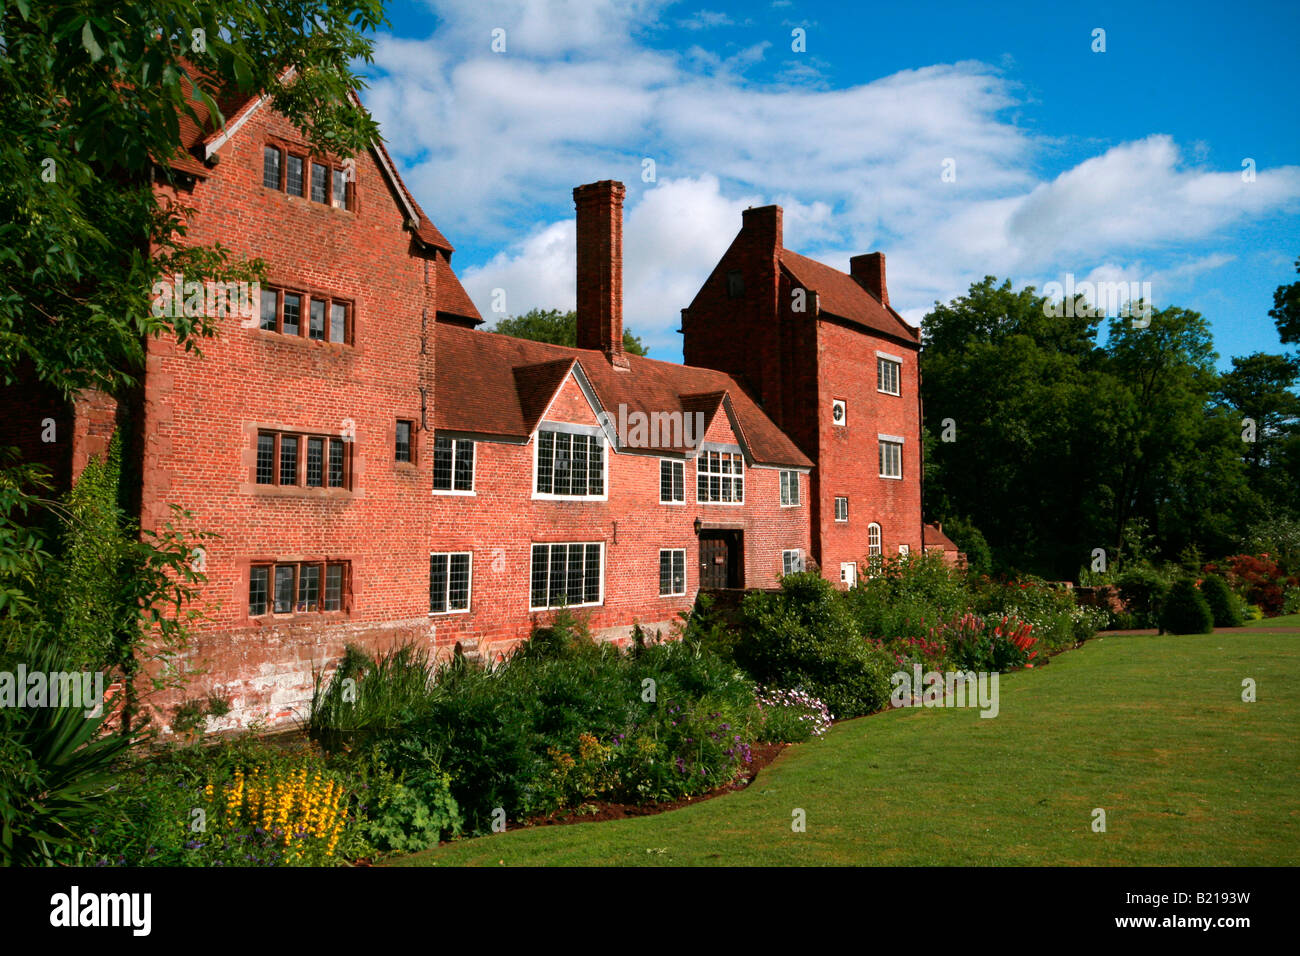 Harvington Hall a Medieval and Elizabethan Moated Manor House near Kidderminster, Worcestershire - Stock Image